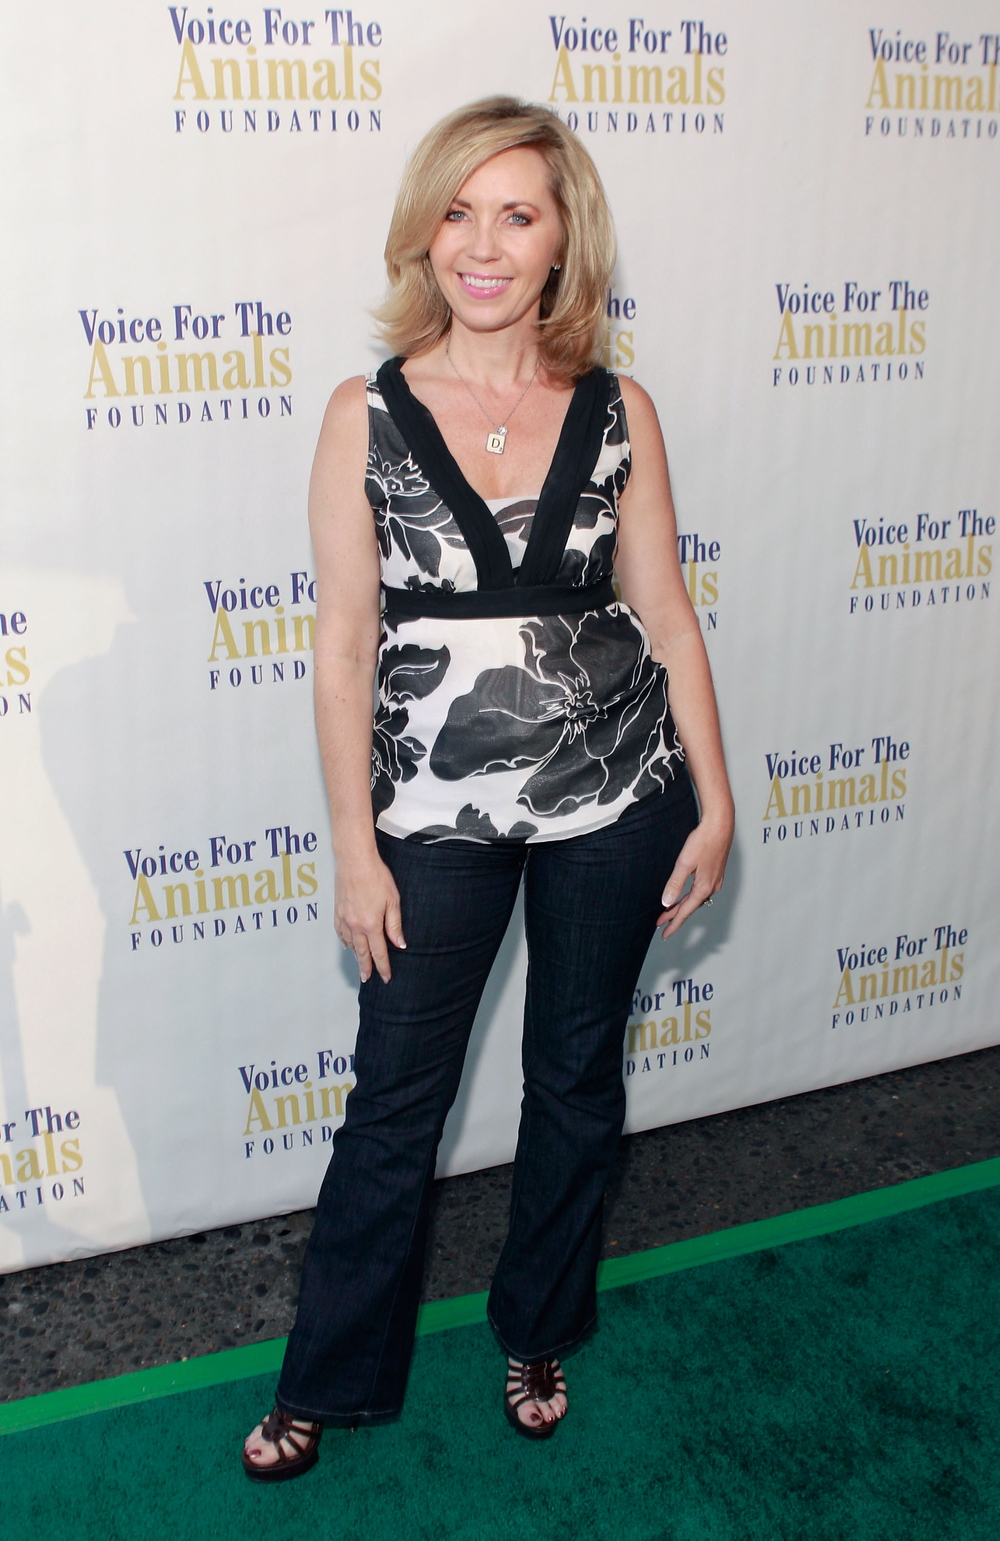 """Supporting Lily Tomlin's """"Stand-Up For Animals"""" comedy benefit for Voice For the Animals Foundation. www.vftafoundation.org"""